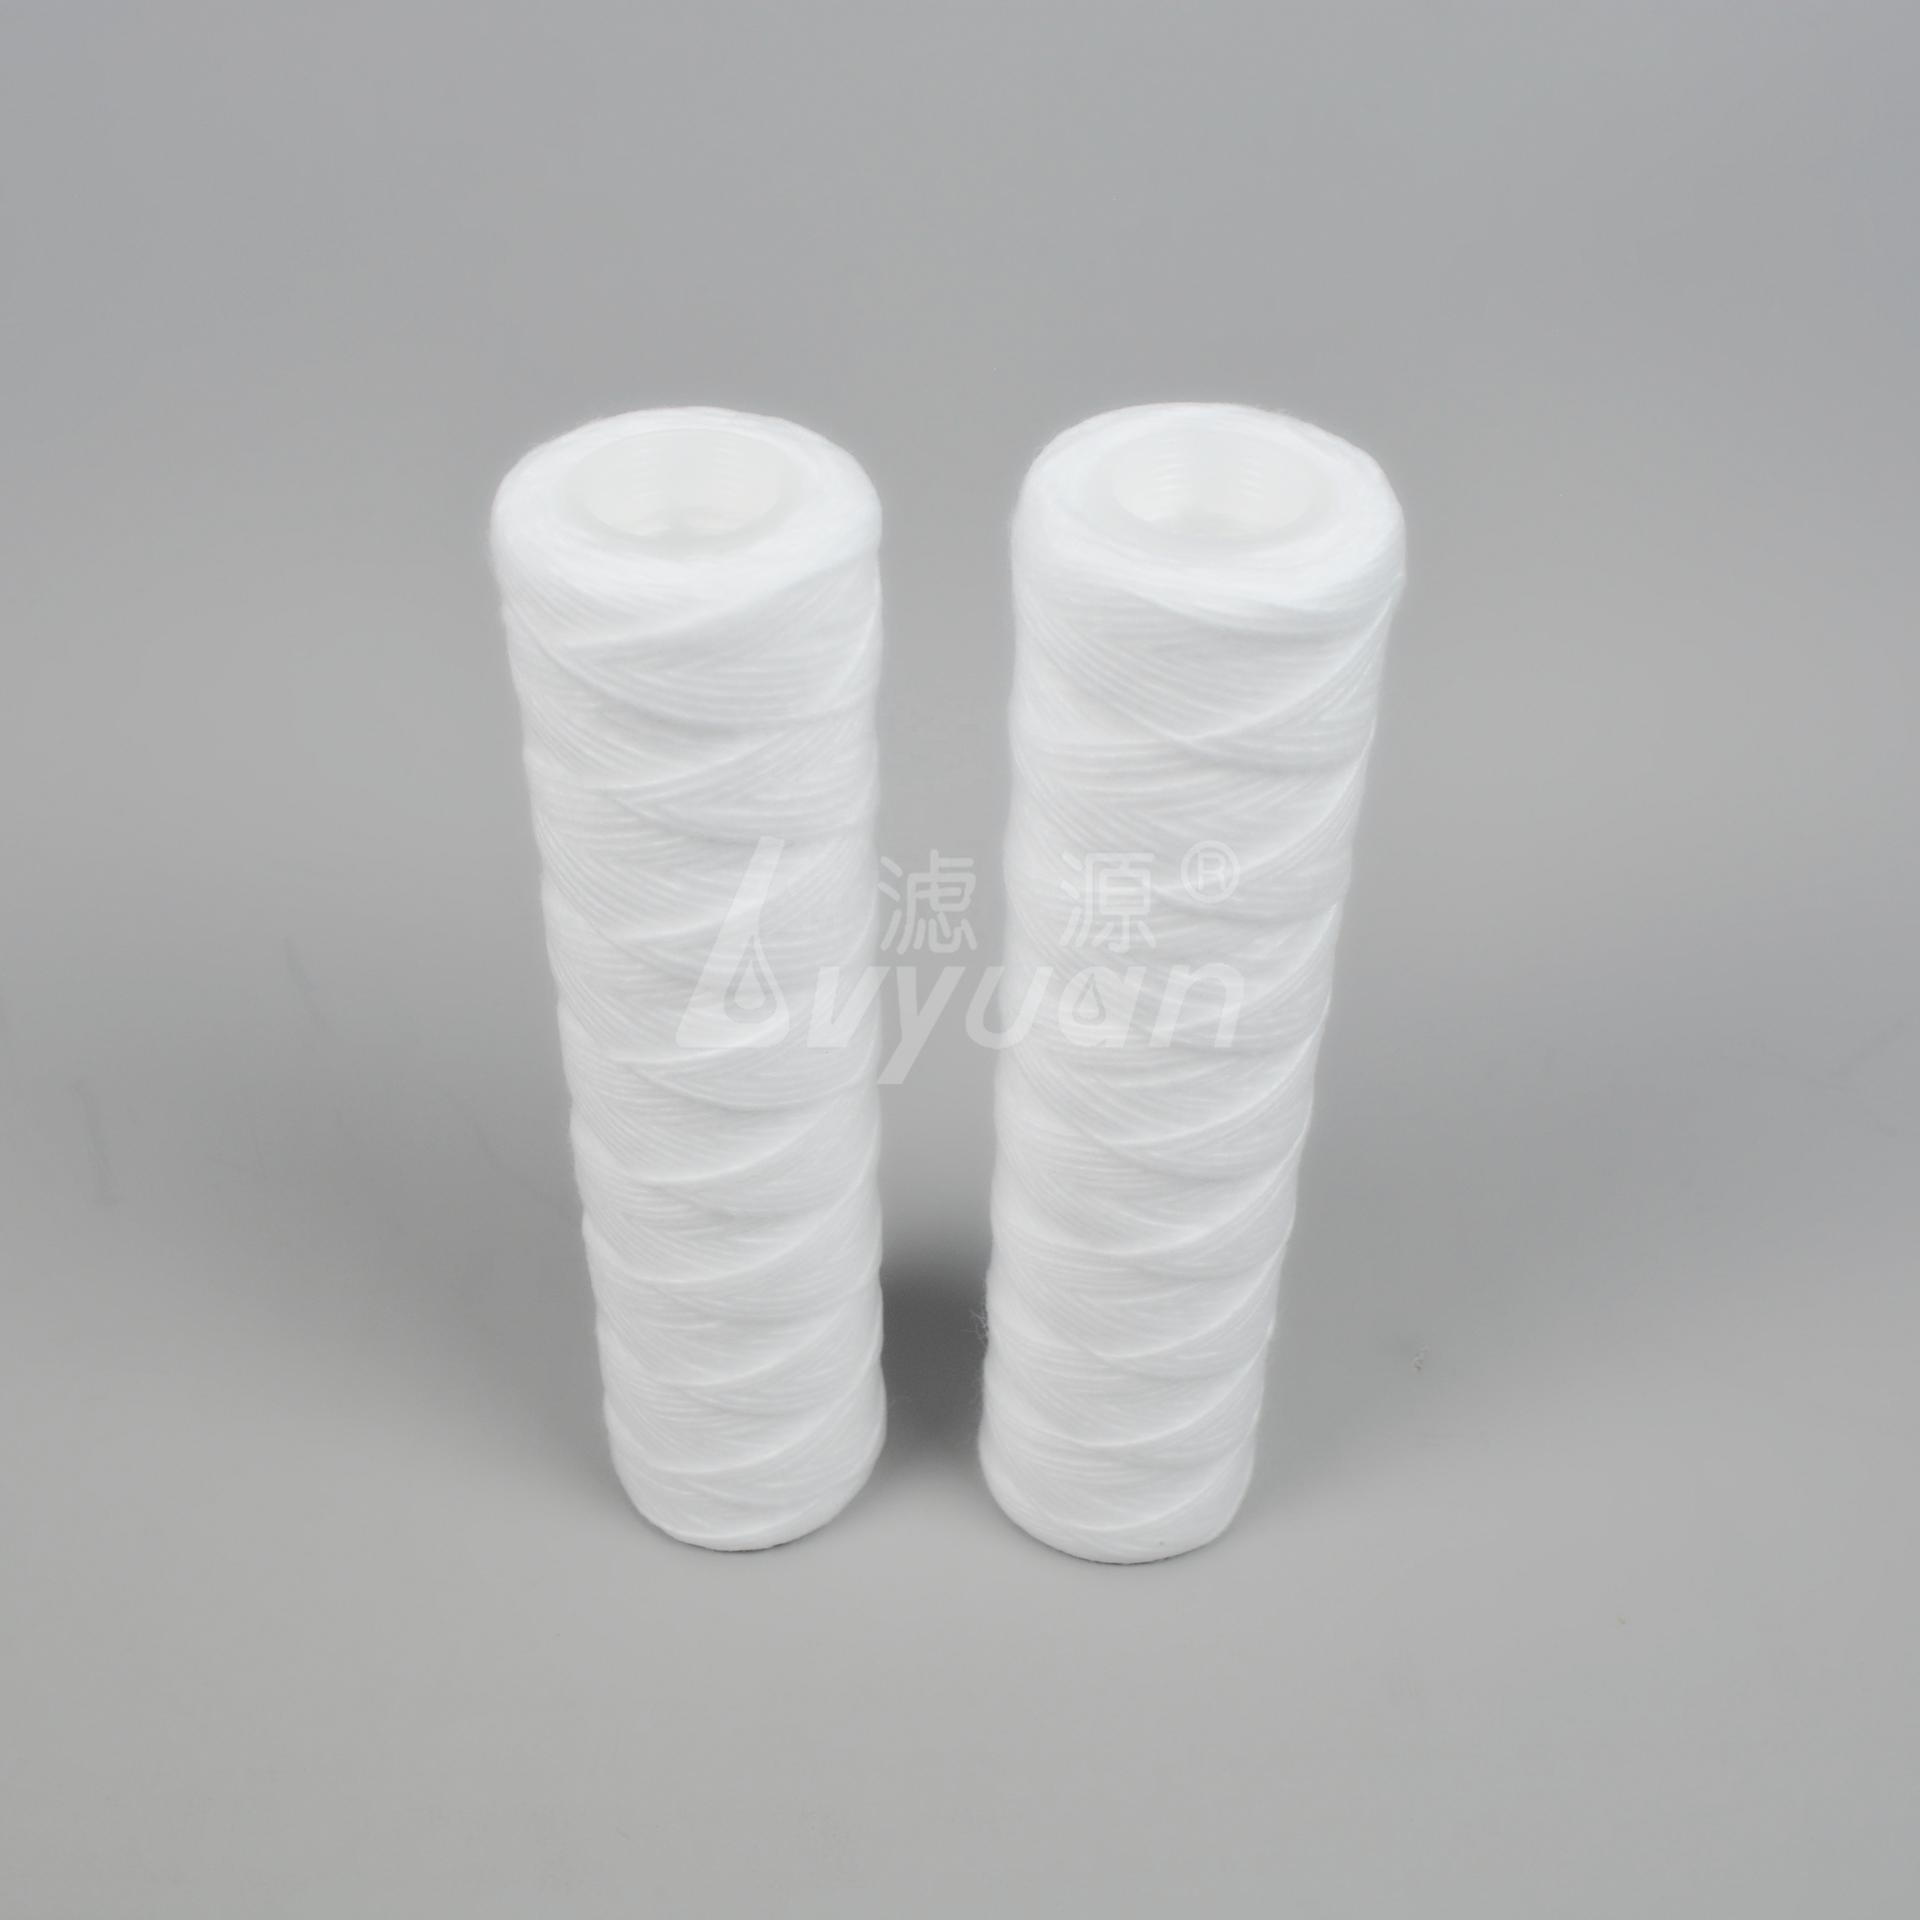 40 inch 5 micron polypropylene spun yarn water cartridge /cotton/ fiberglass string wound water filter cartridge